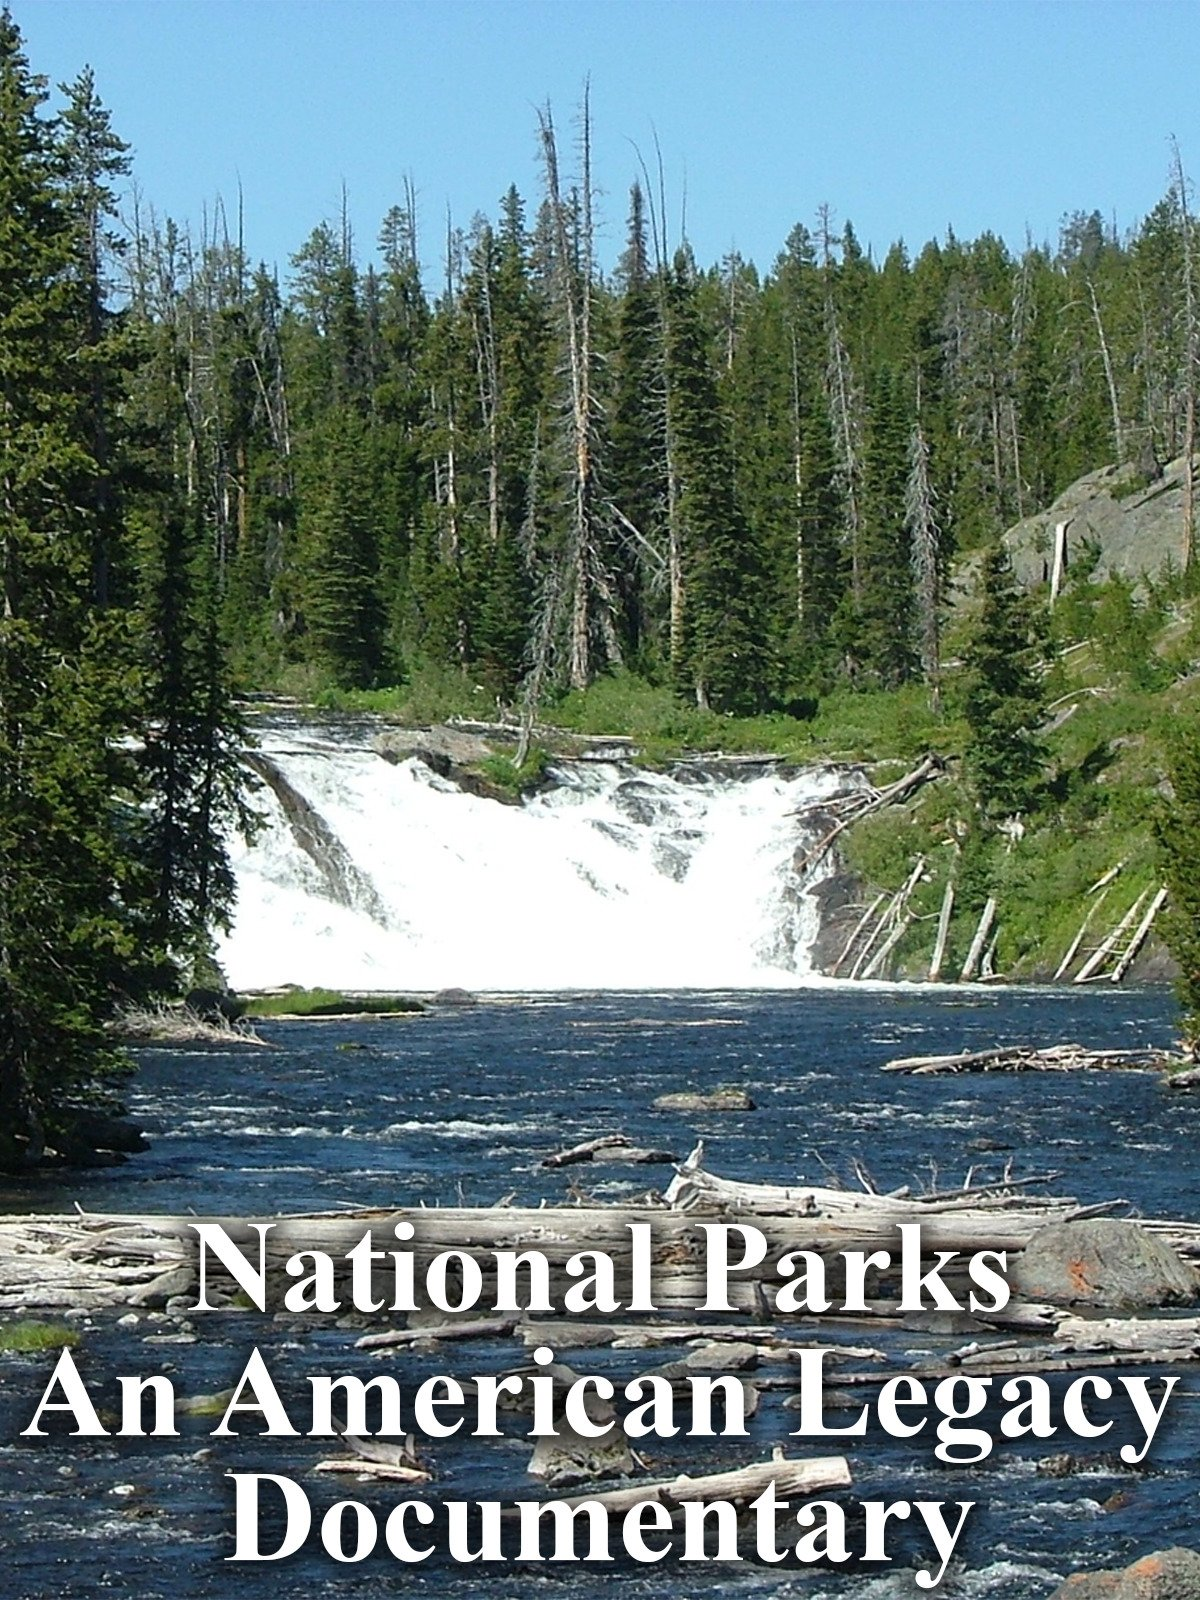 National Parks An American Legacy Documentary